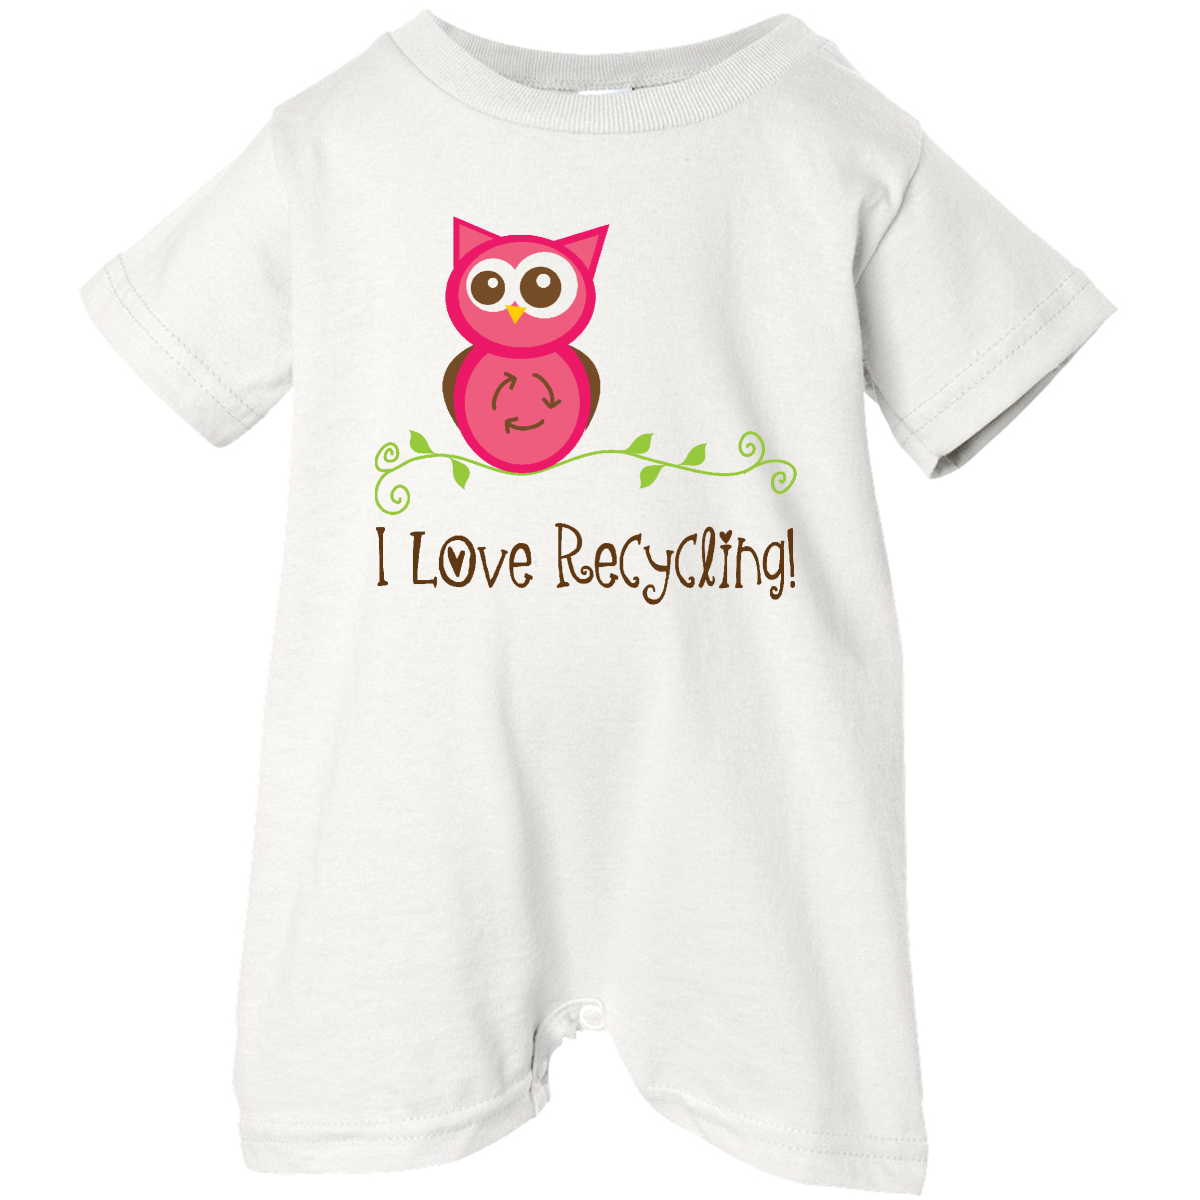 I Love Recycling Baby Romper for Earth Day. www